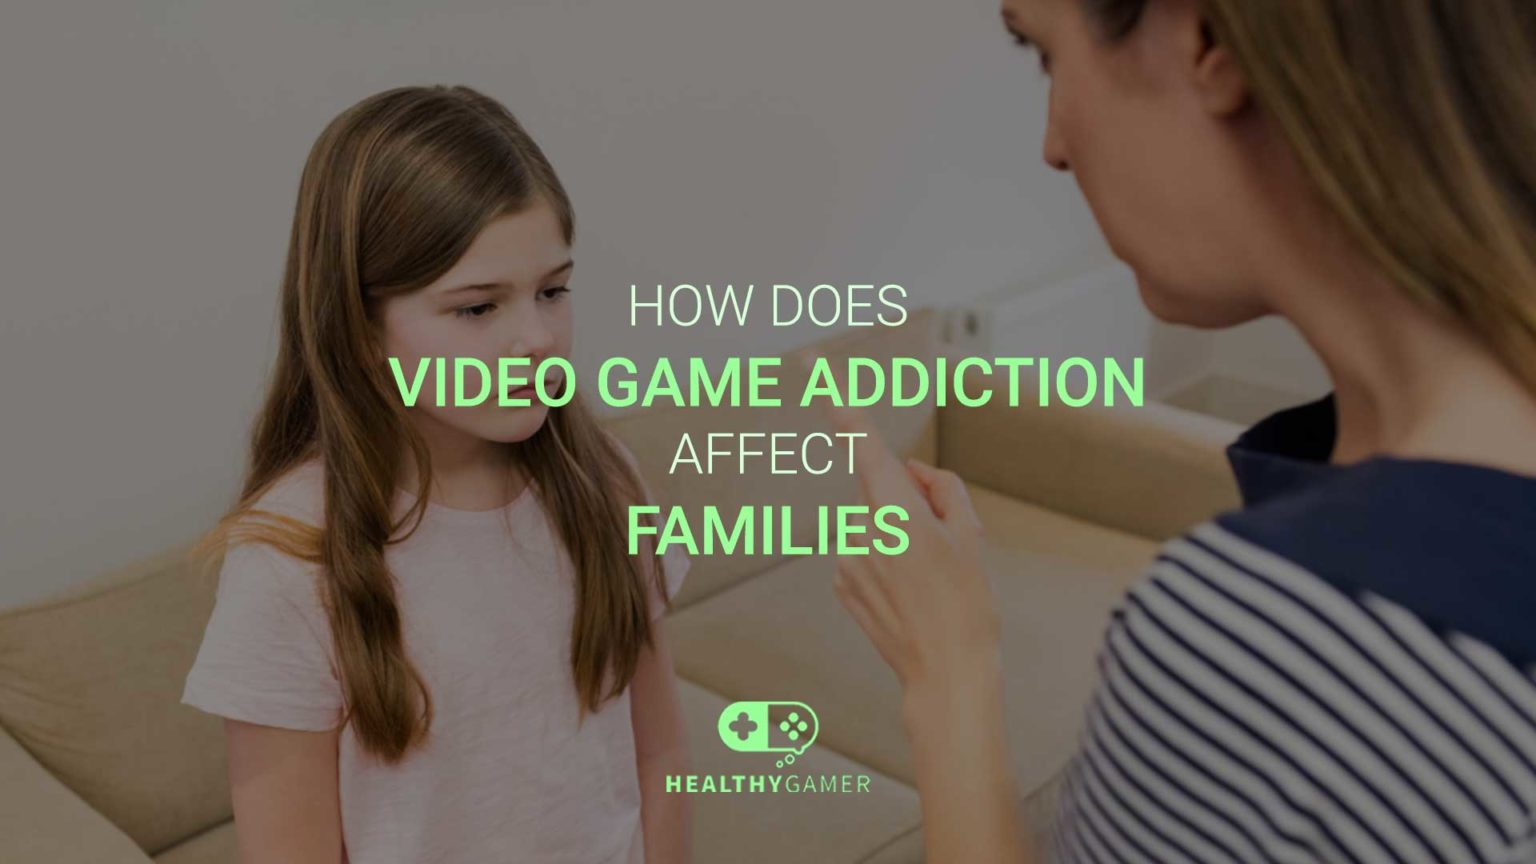 How Does Video Game Addiction Affect Families?